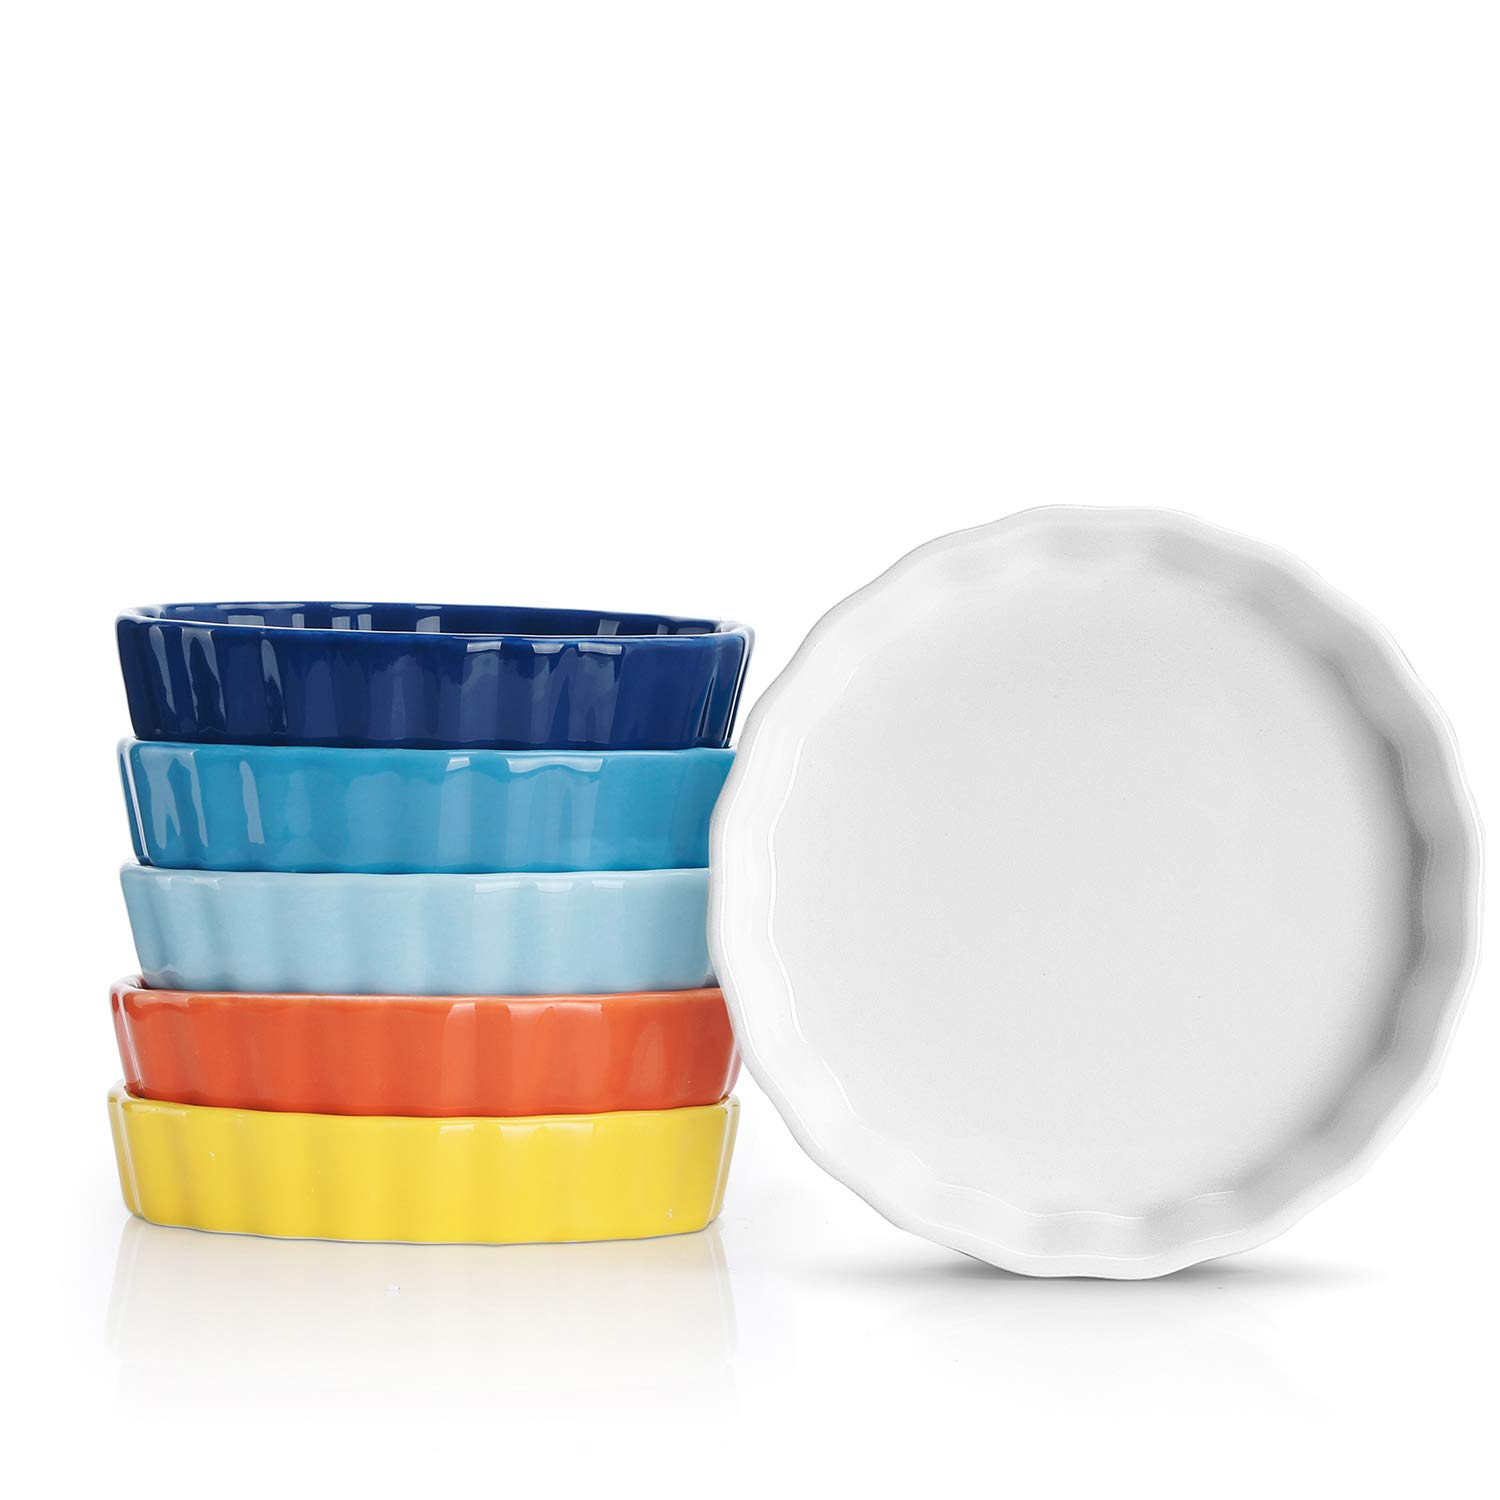 Sweese 505.002 Porcelain Ramekins Round Shape - 5 Ounce for Creme Brulee - Set of 6, Hot Assorted Colors